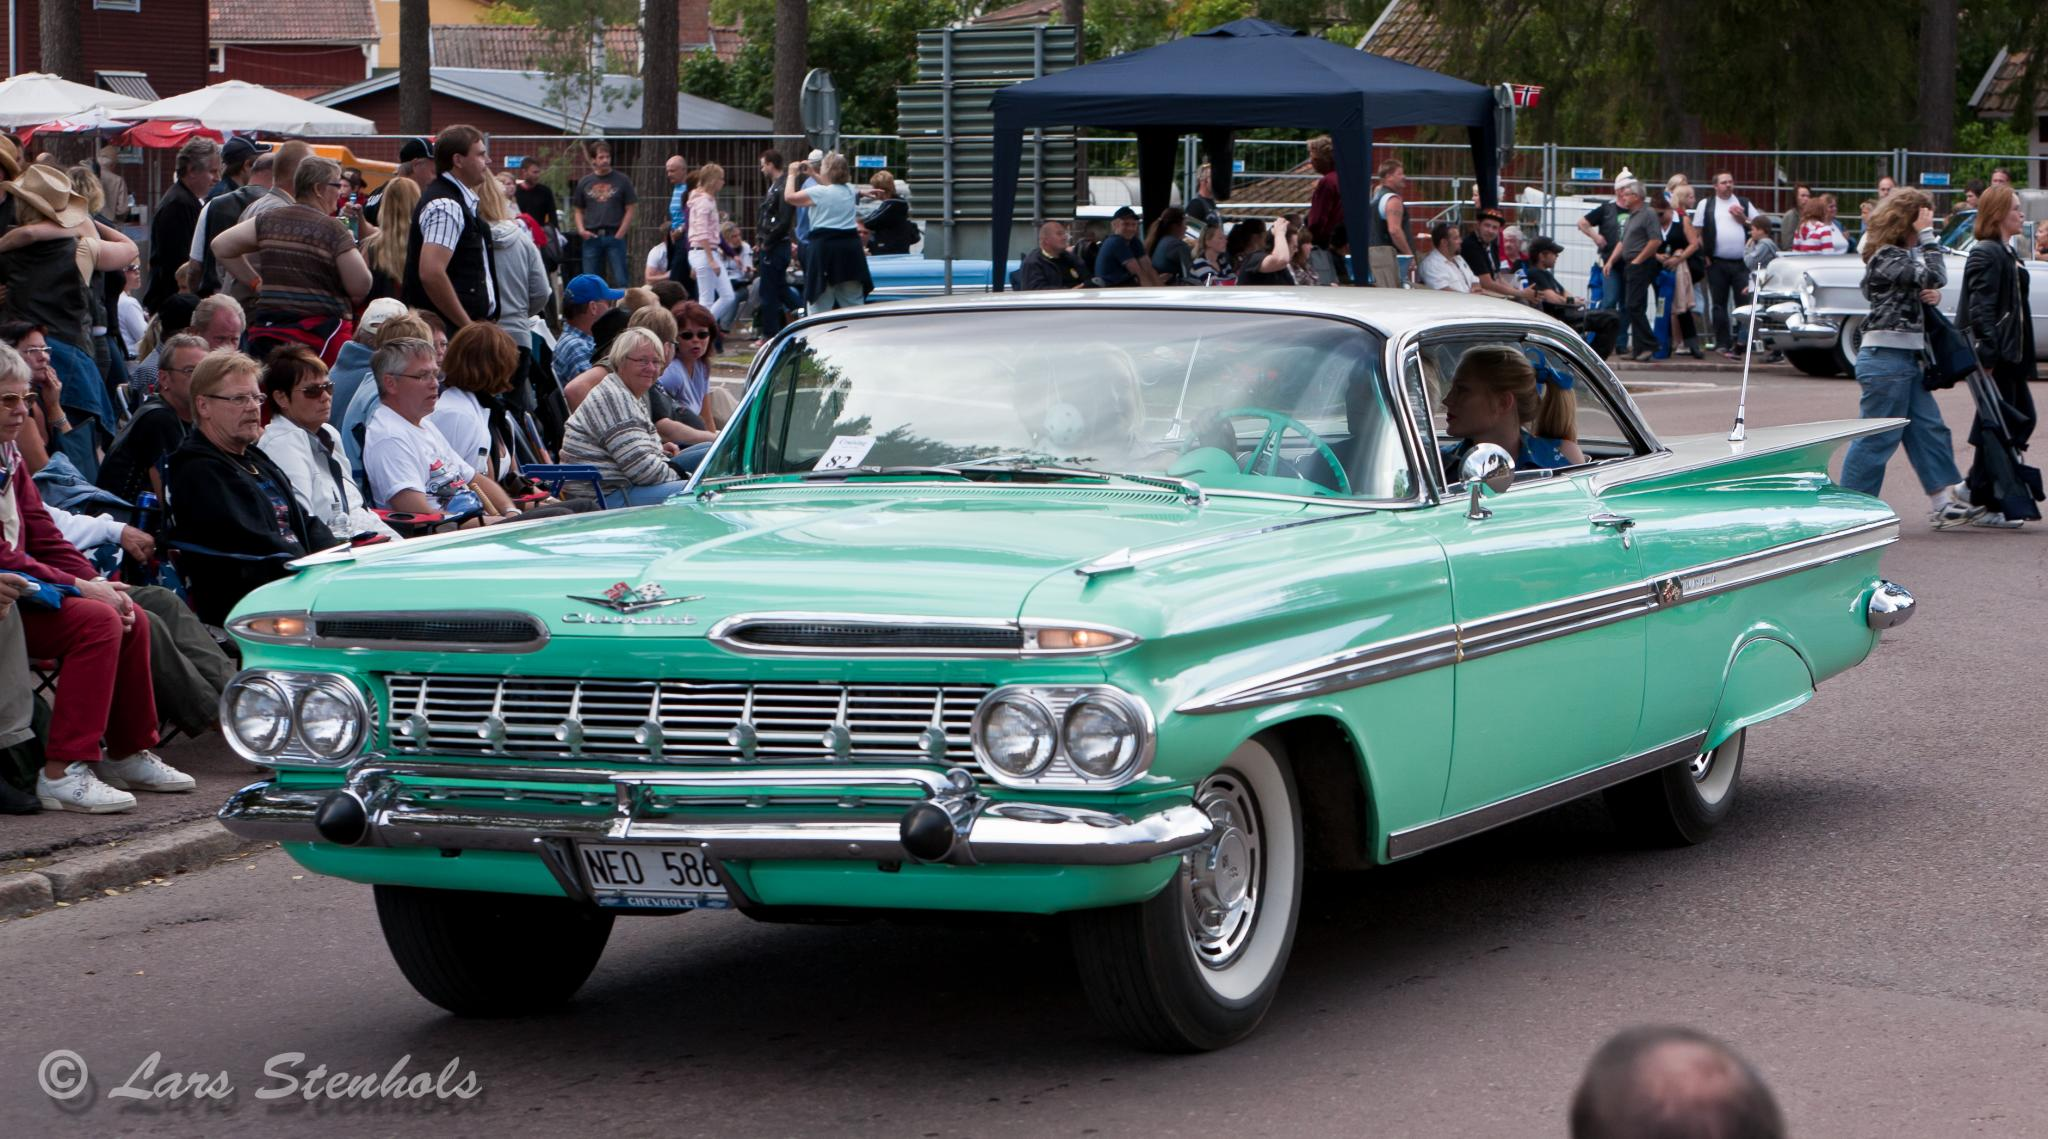 Chevrolet Biscayne -59 | Flickr - Photo Sharing!